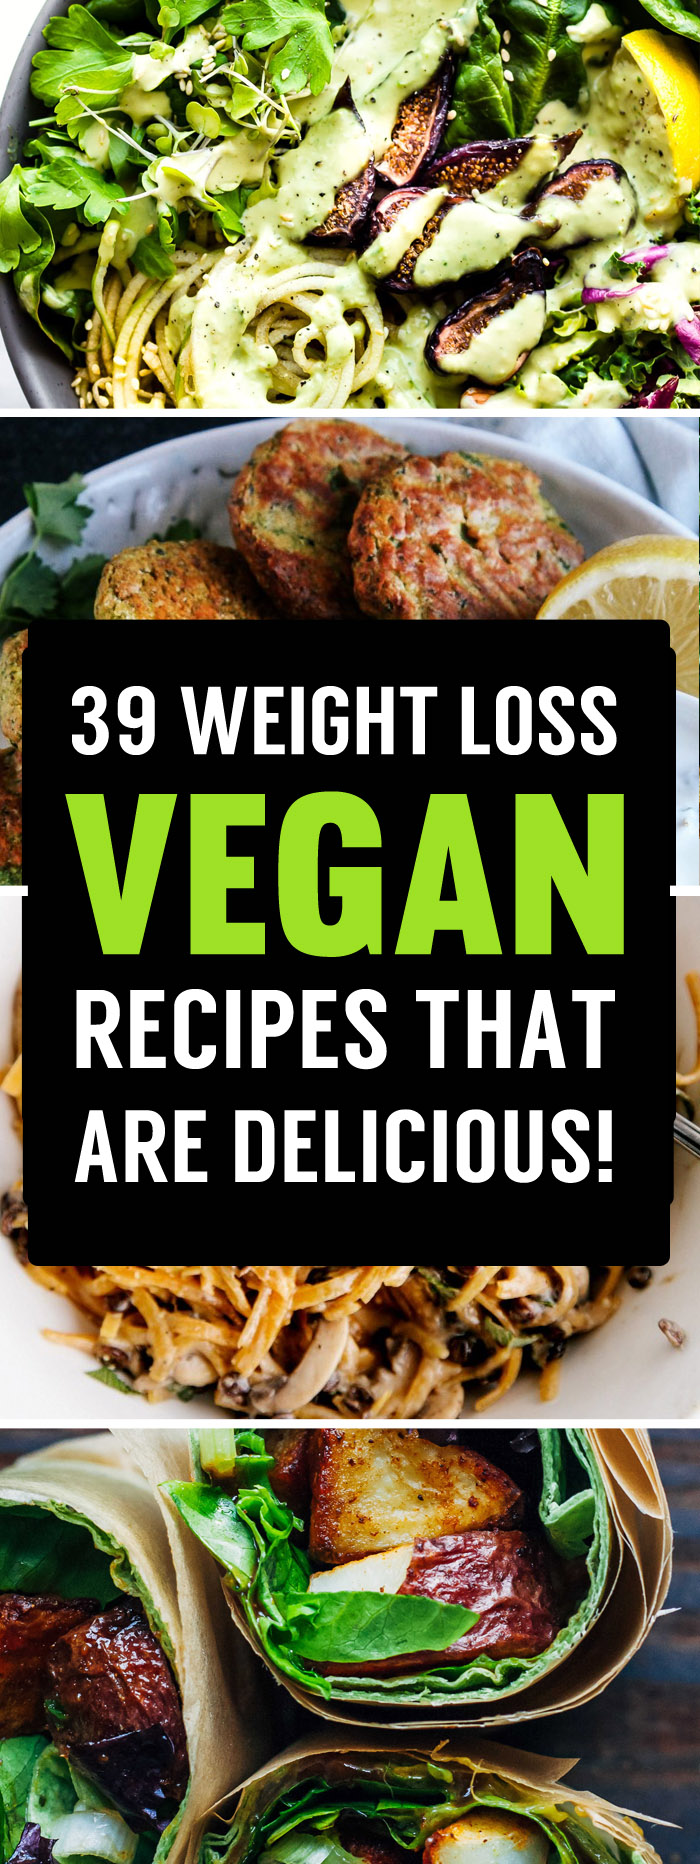 39 Delicious Vegan Recipes That Are Perfect For Losing Weight